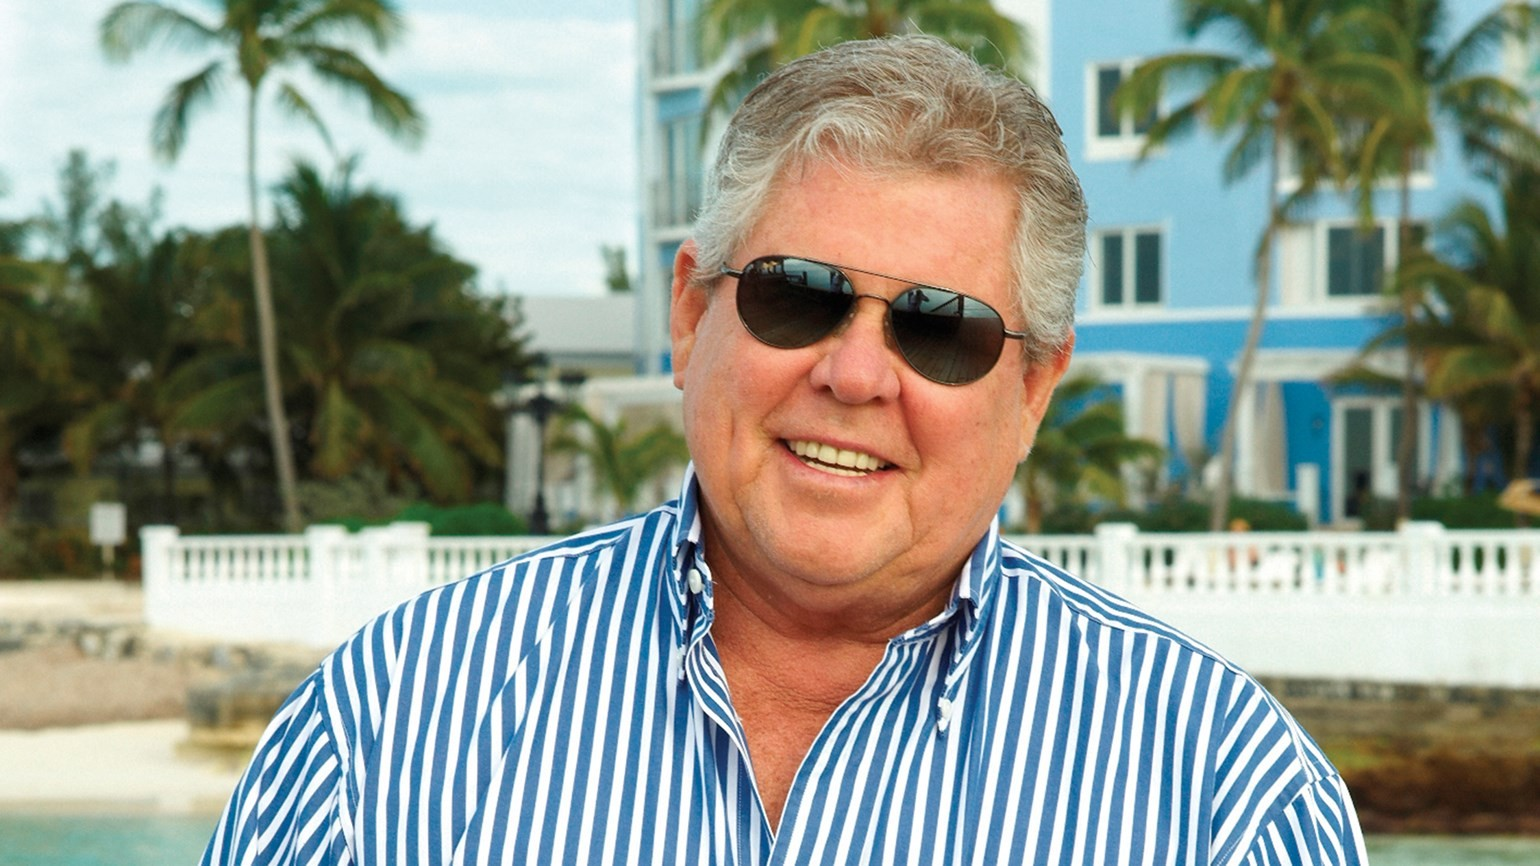 Tourism and hospitality scholarship created in honour of 'Butch' Stewart